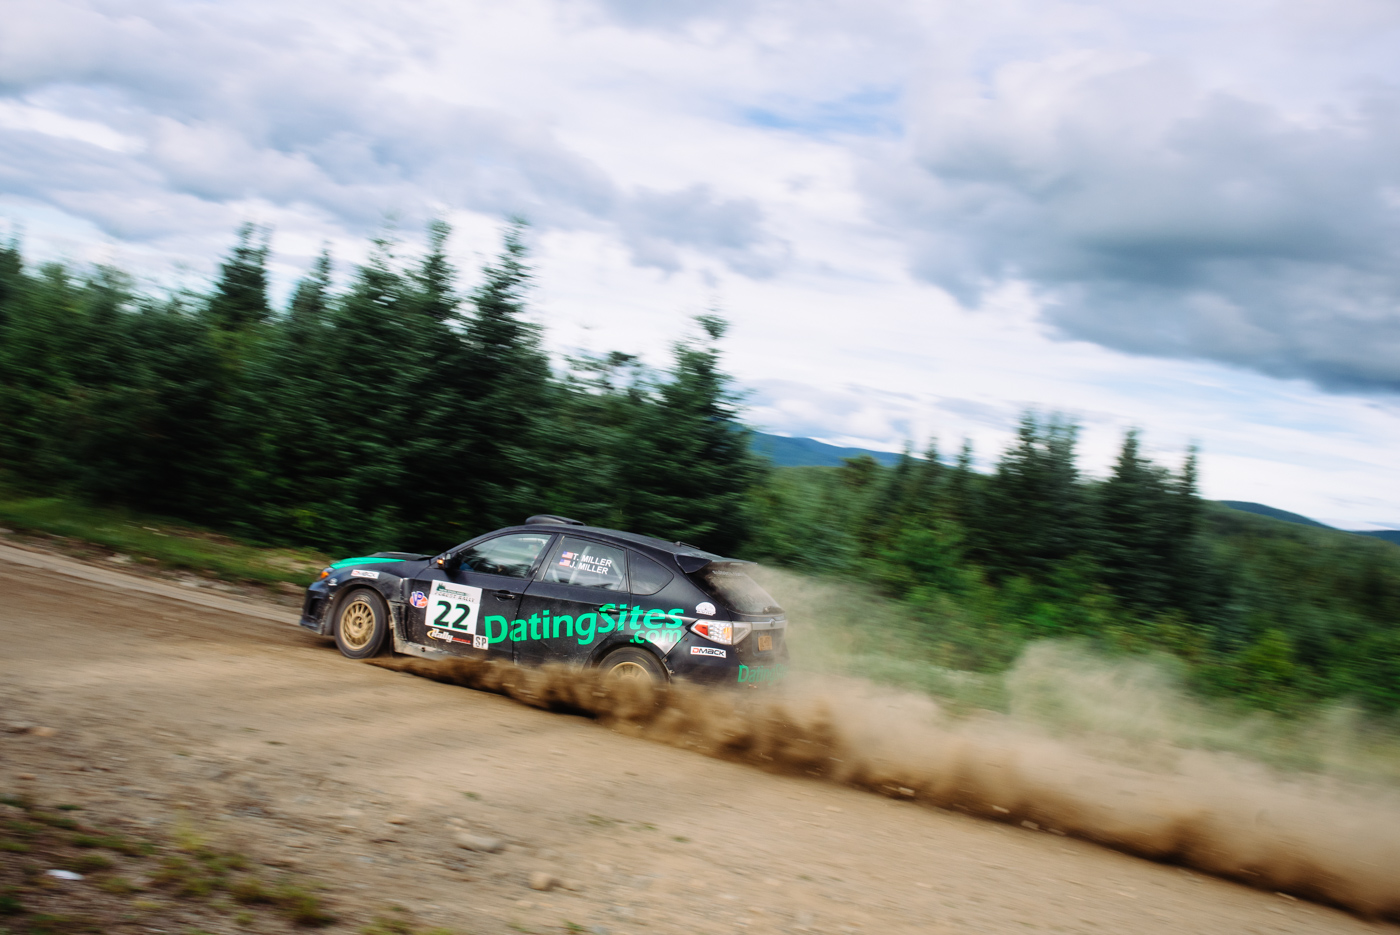 160716_rally-daytwo_006.jpg